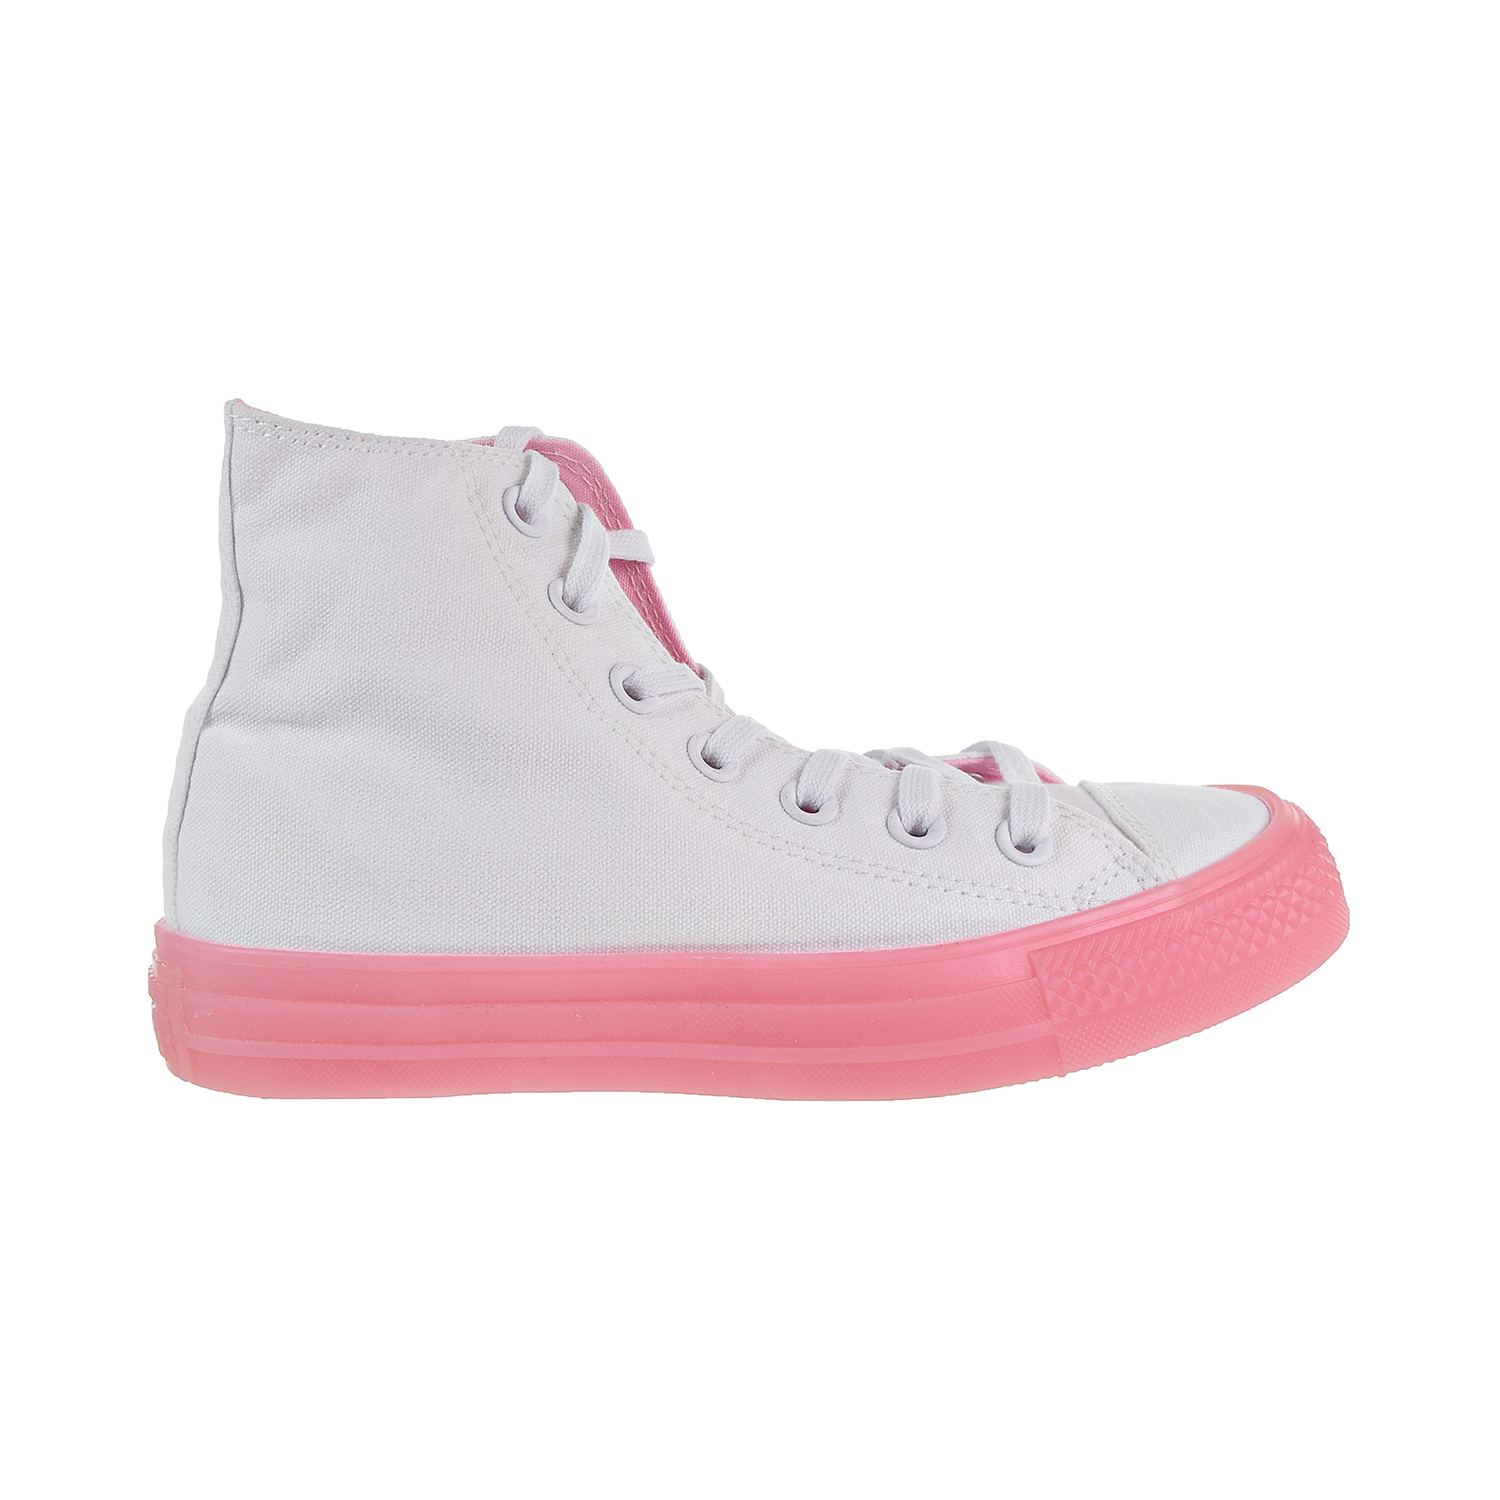 957c15ec Converse Chuck Taylor All Star Hi Candy Coated Women's Shoes White ...